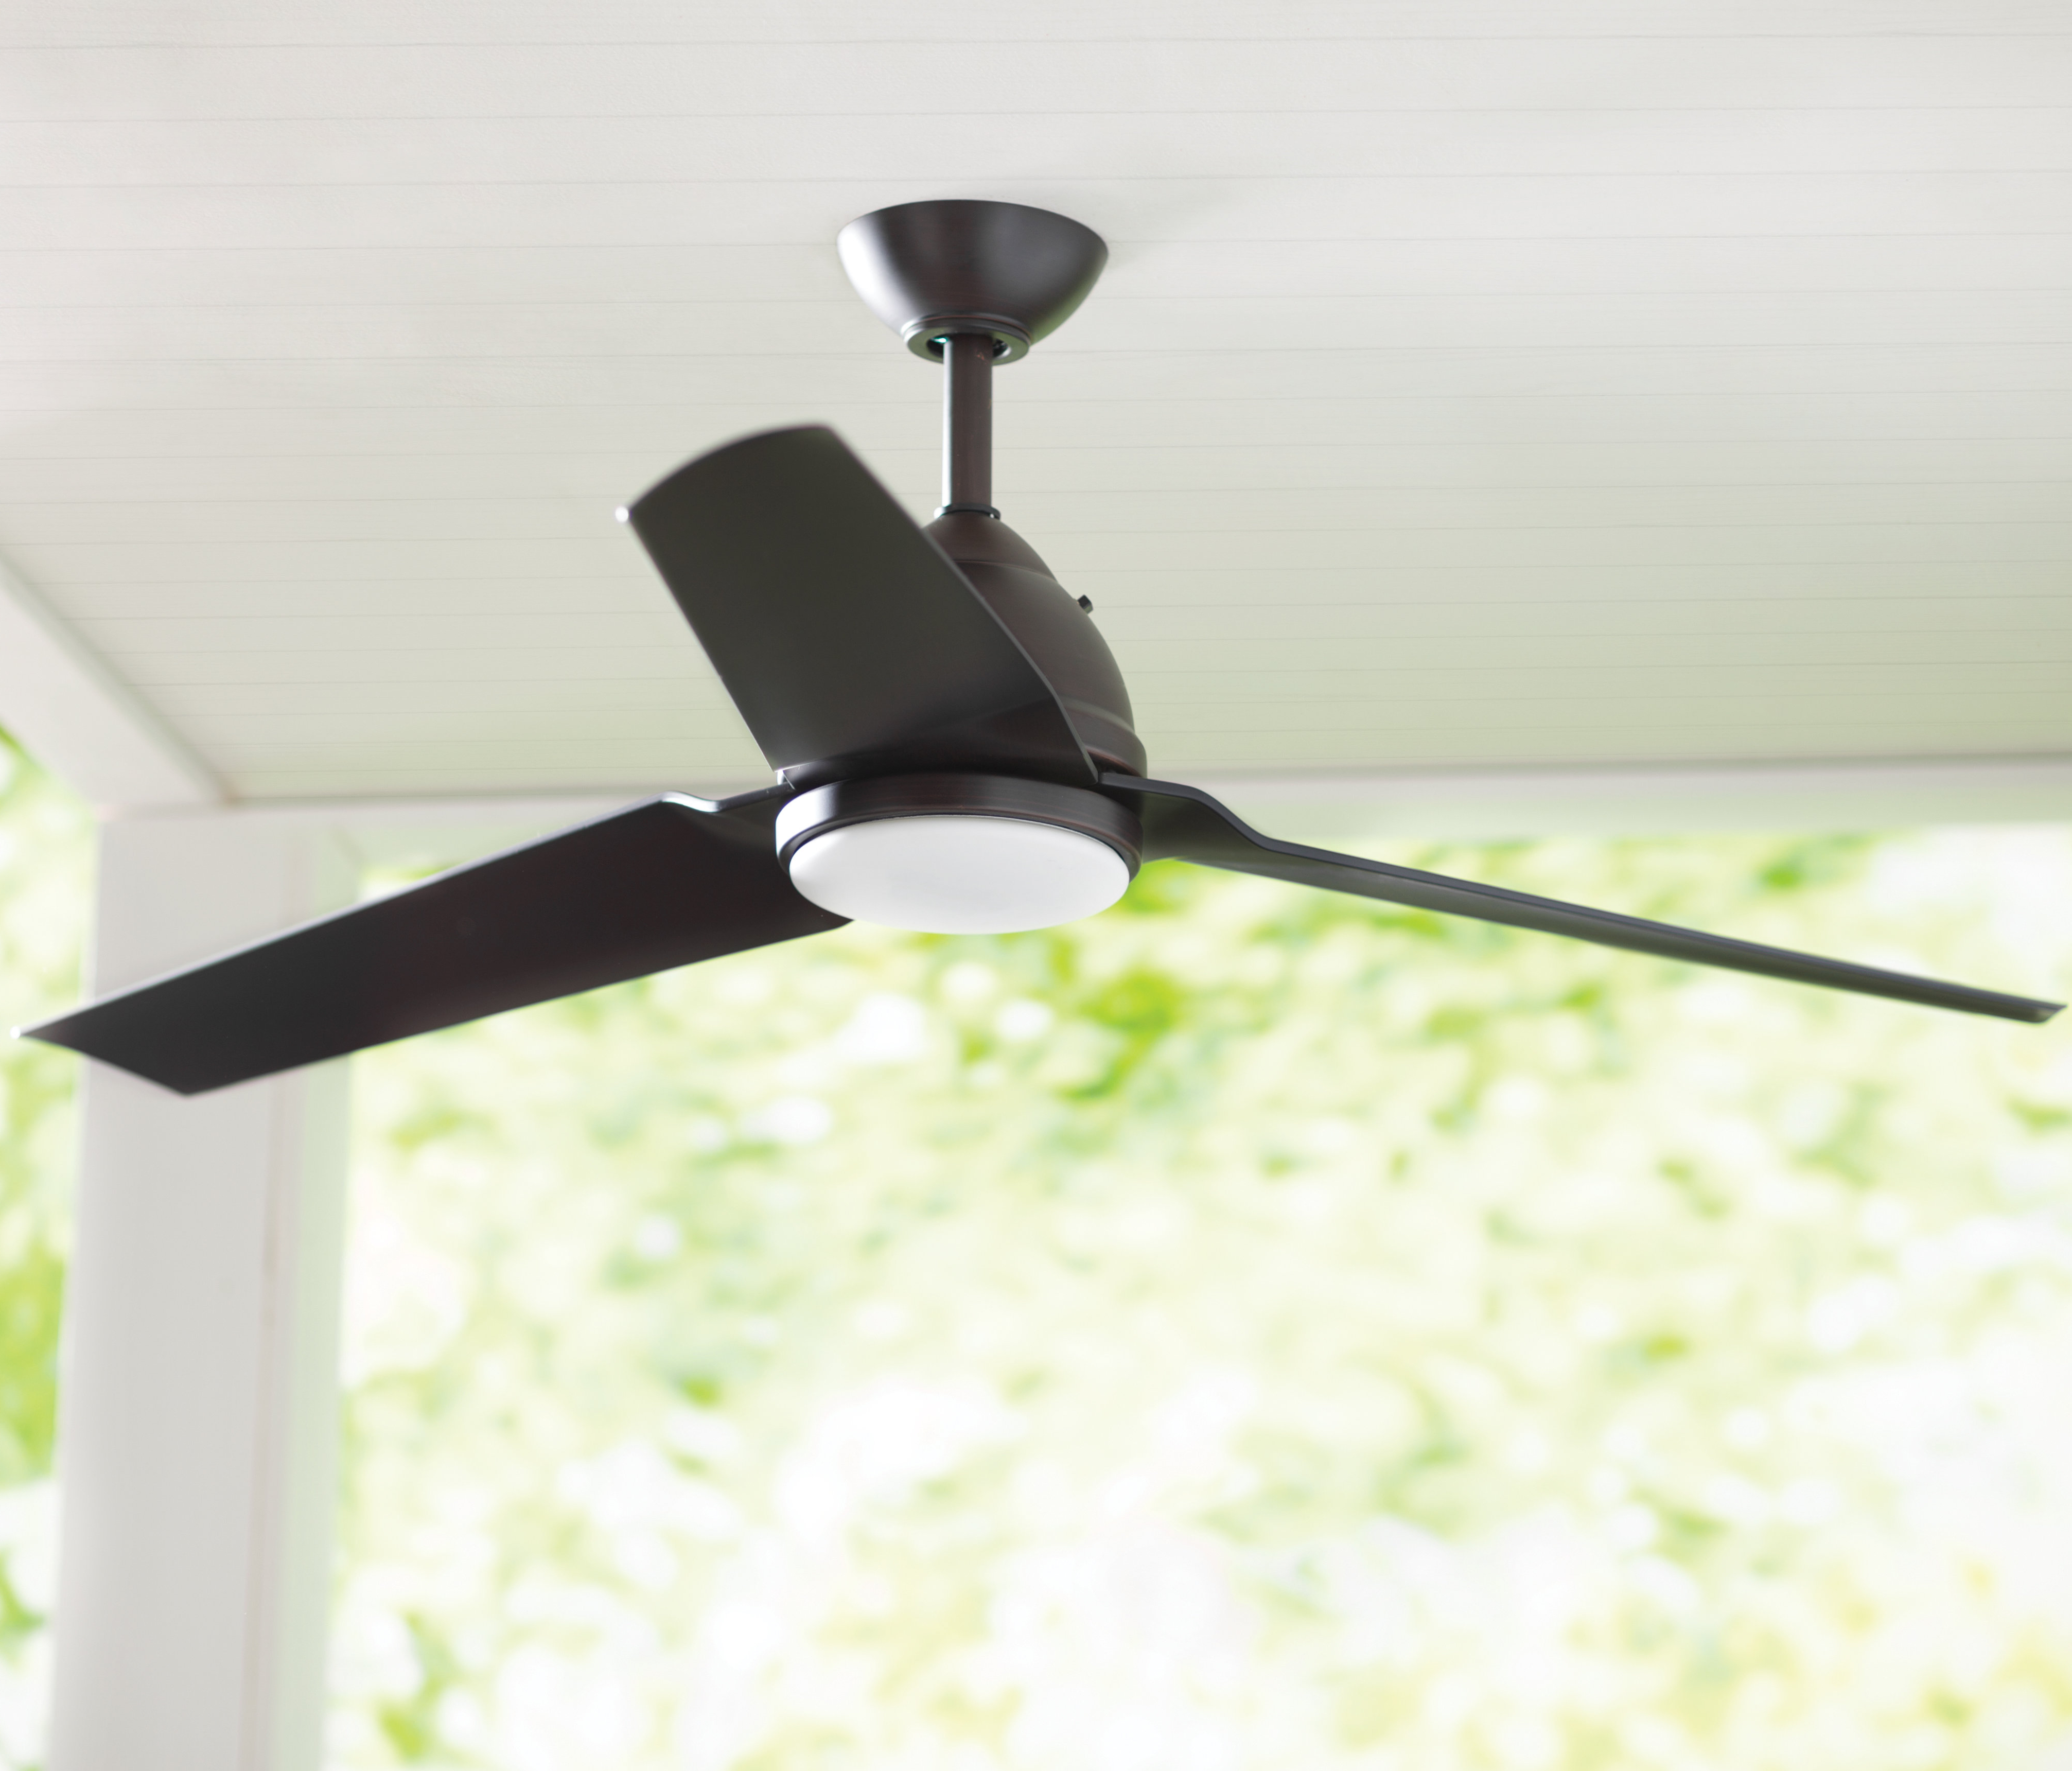 Wayfair With Regard To Auden 5 Blade Led Ceiling Fans (View 15 of 20)